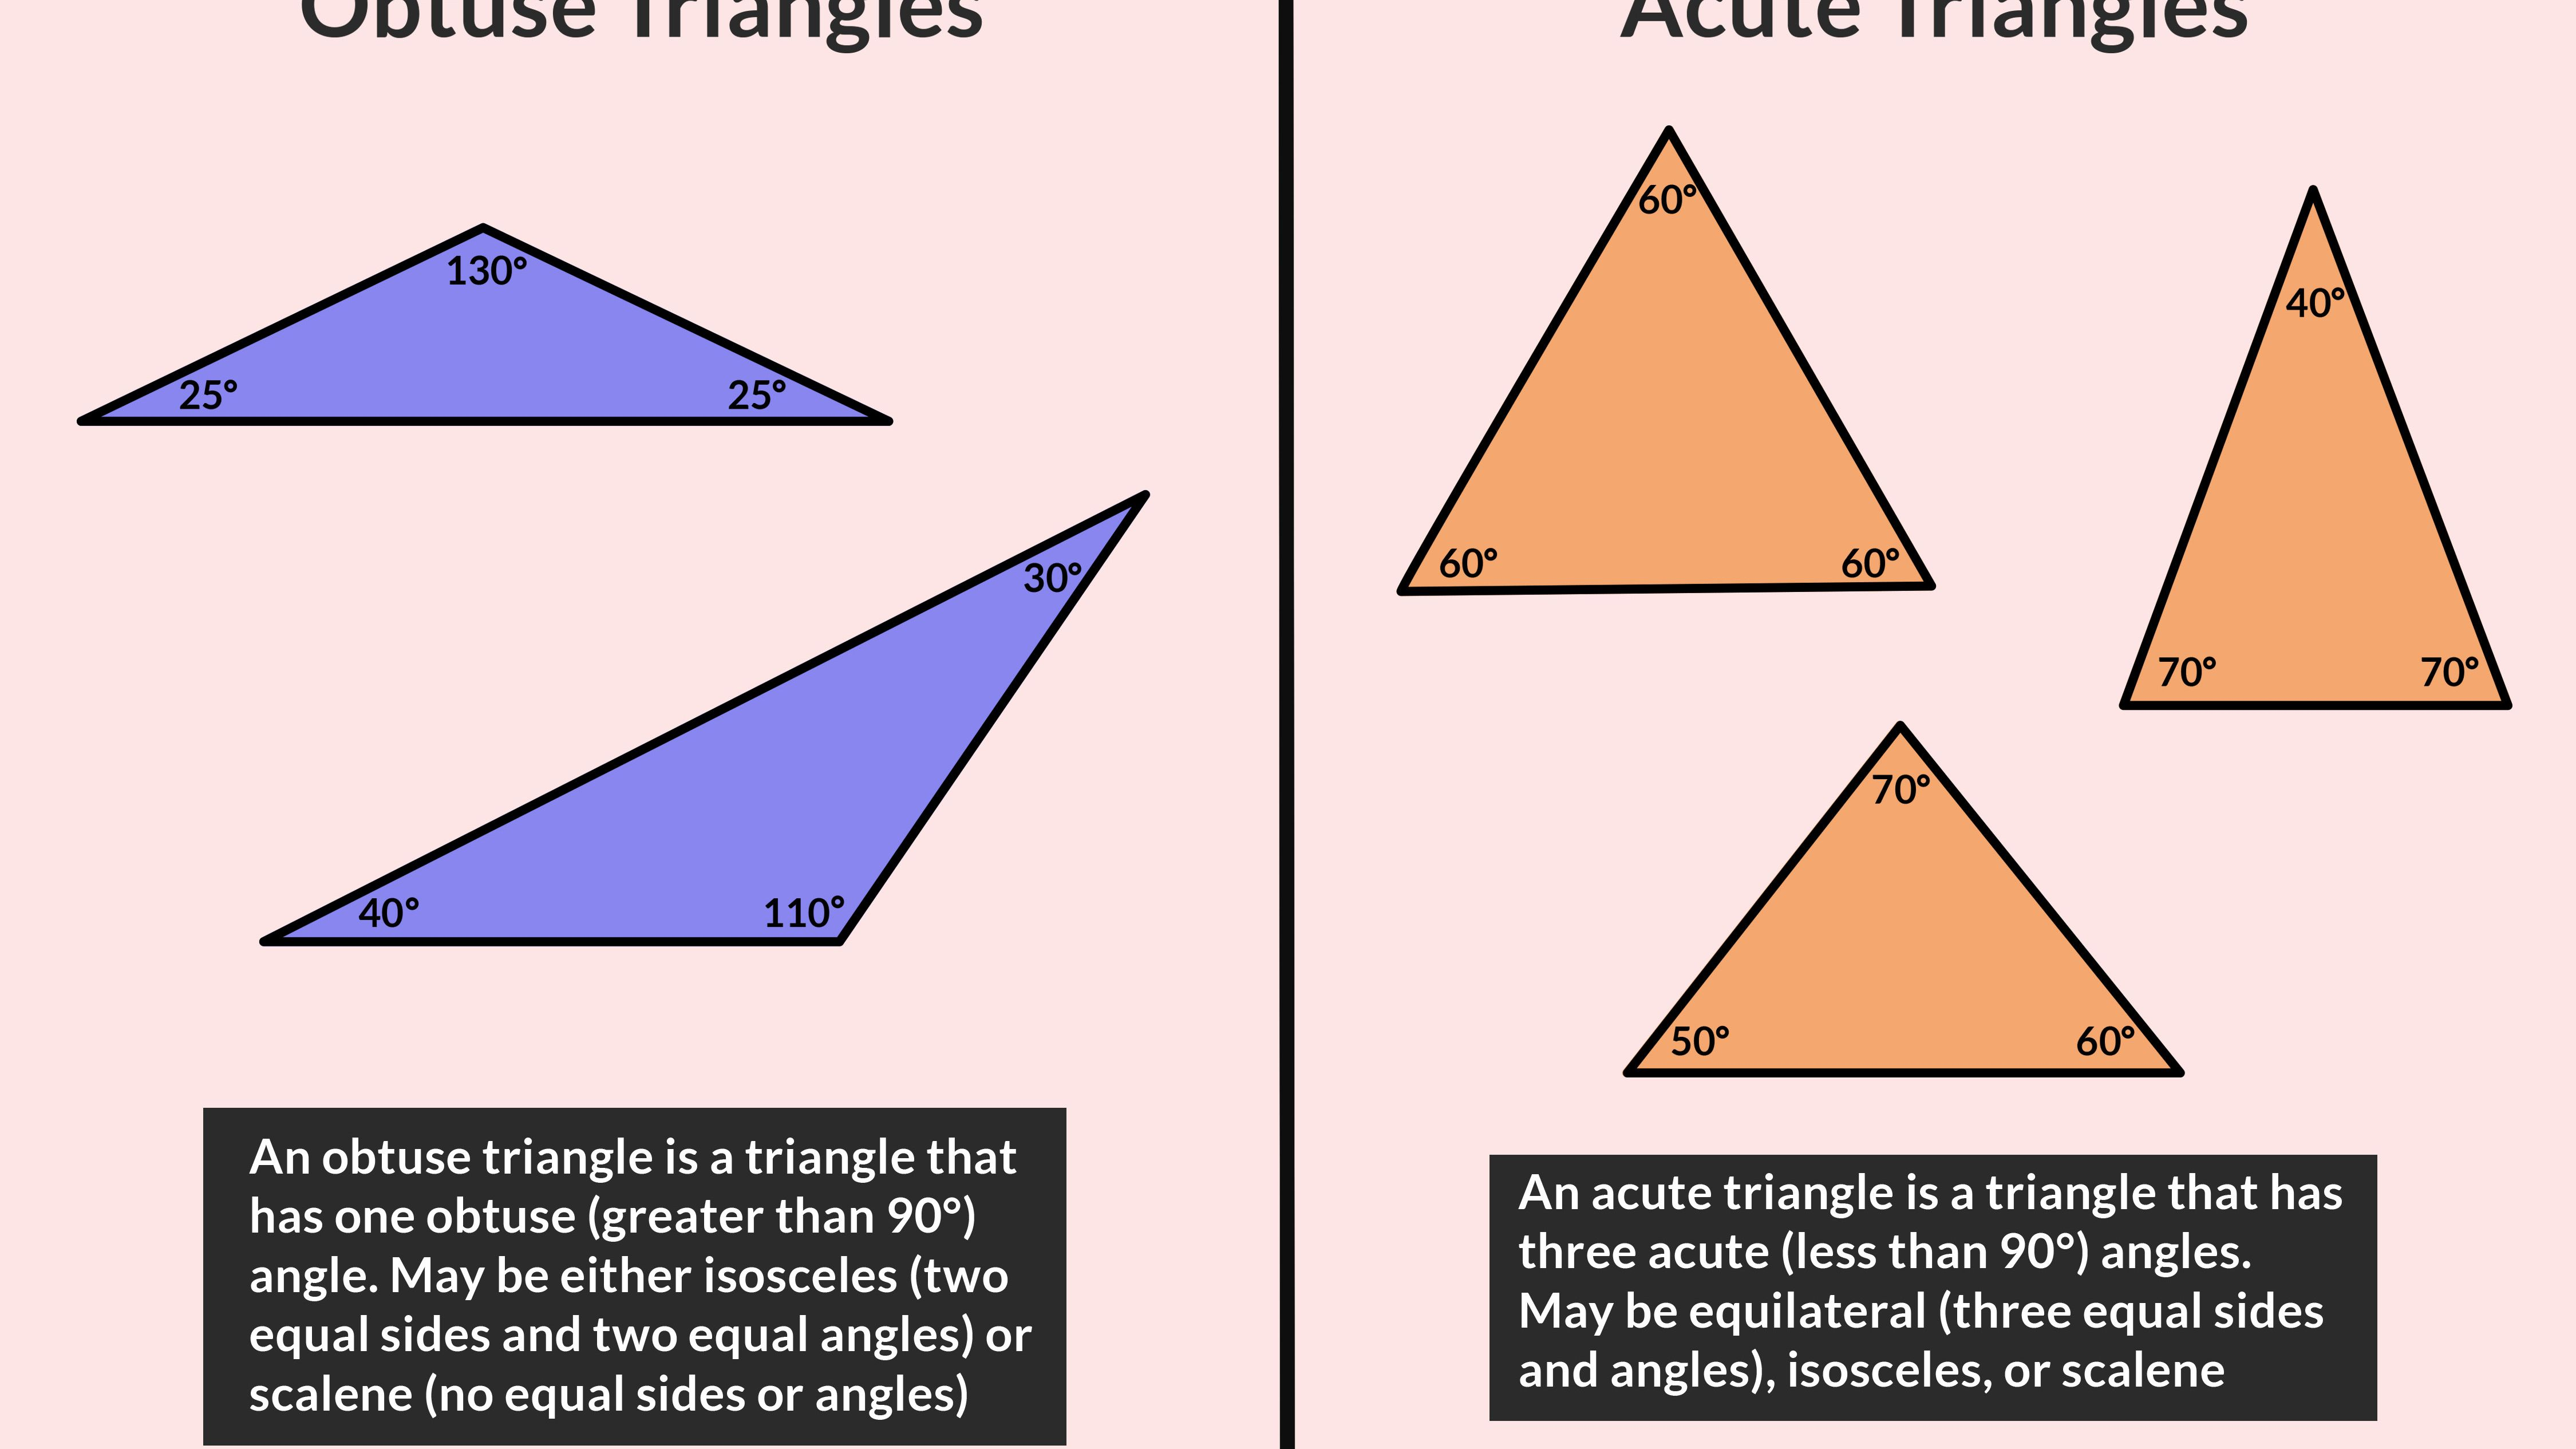 Types of Triangles: Acute and Obtuse